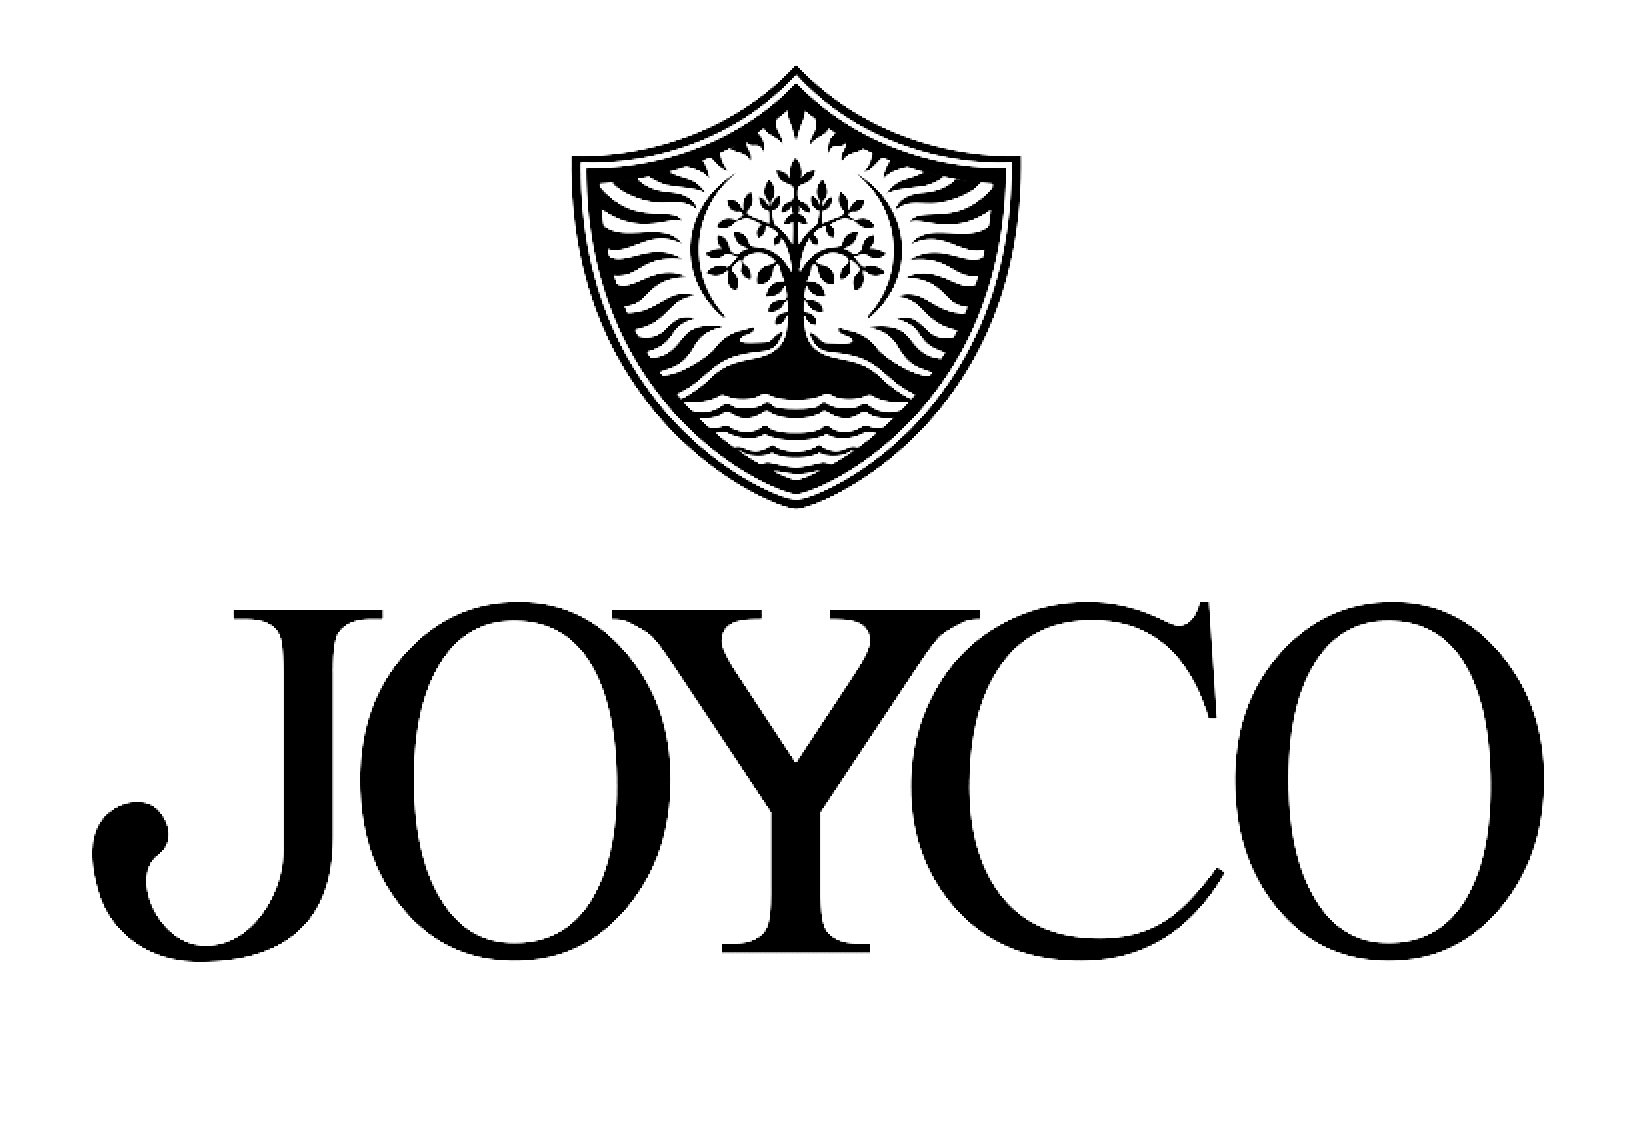 Joyco details a report by trademark bank calendar your mark thank you for using trademark bank to search for the joyco this mark was filed by armenian canadian jv grand candy co ltd on 06272014 for goods and buycottarizona Gallery